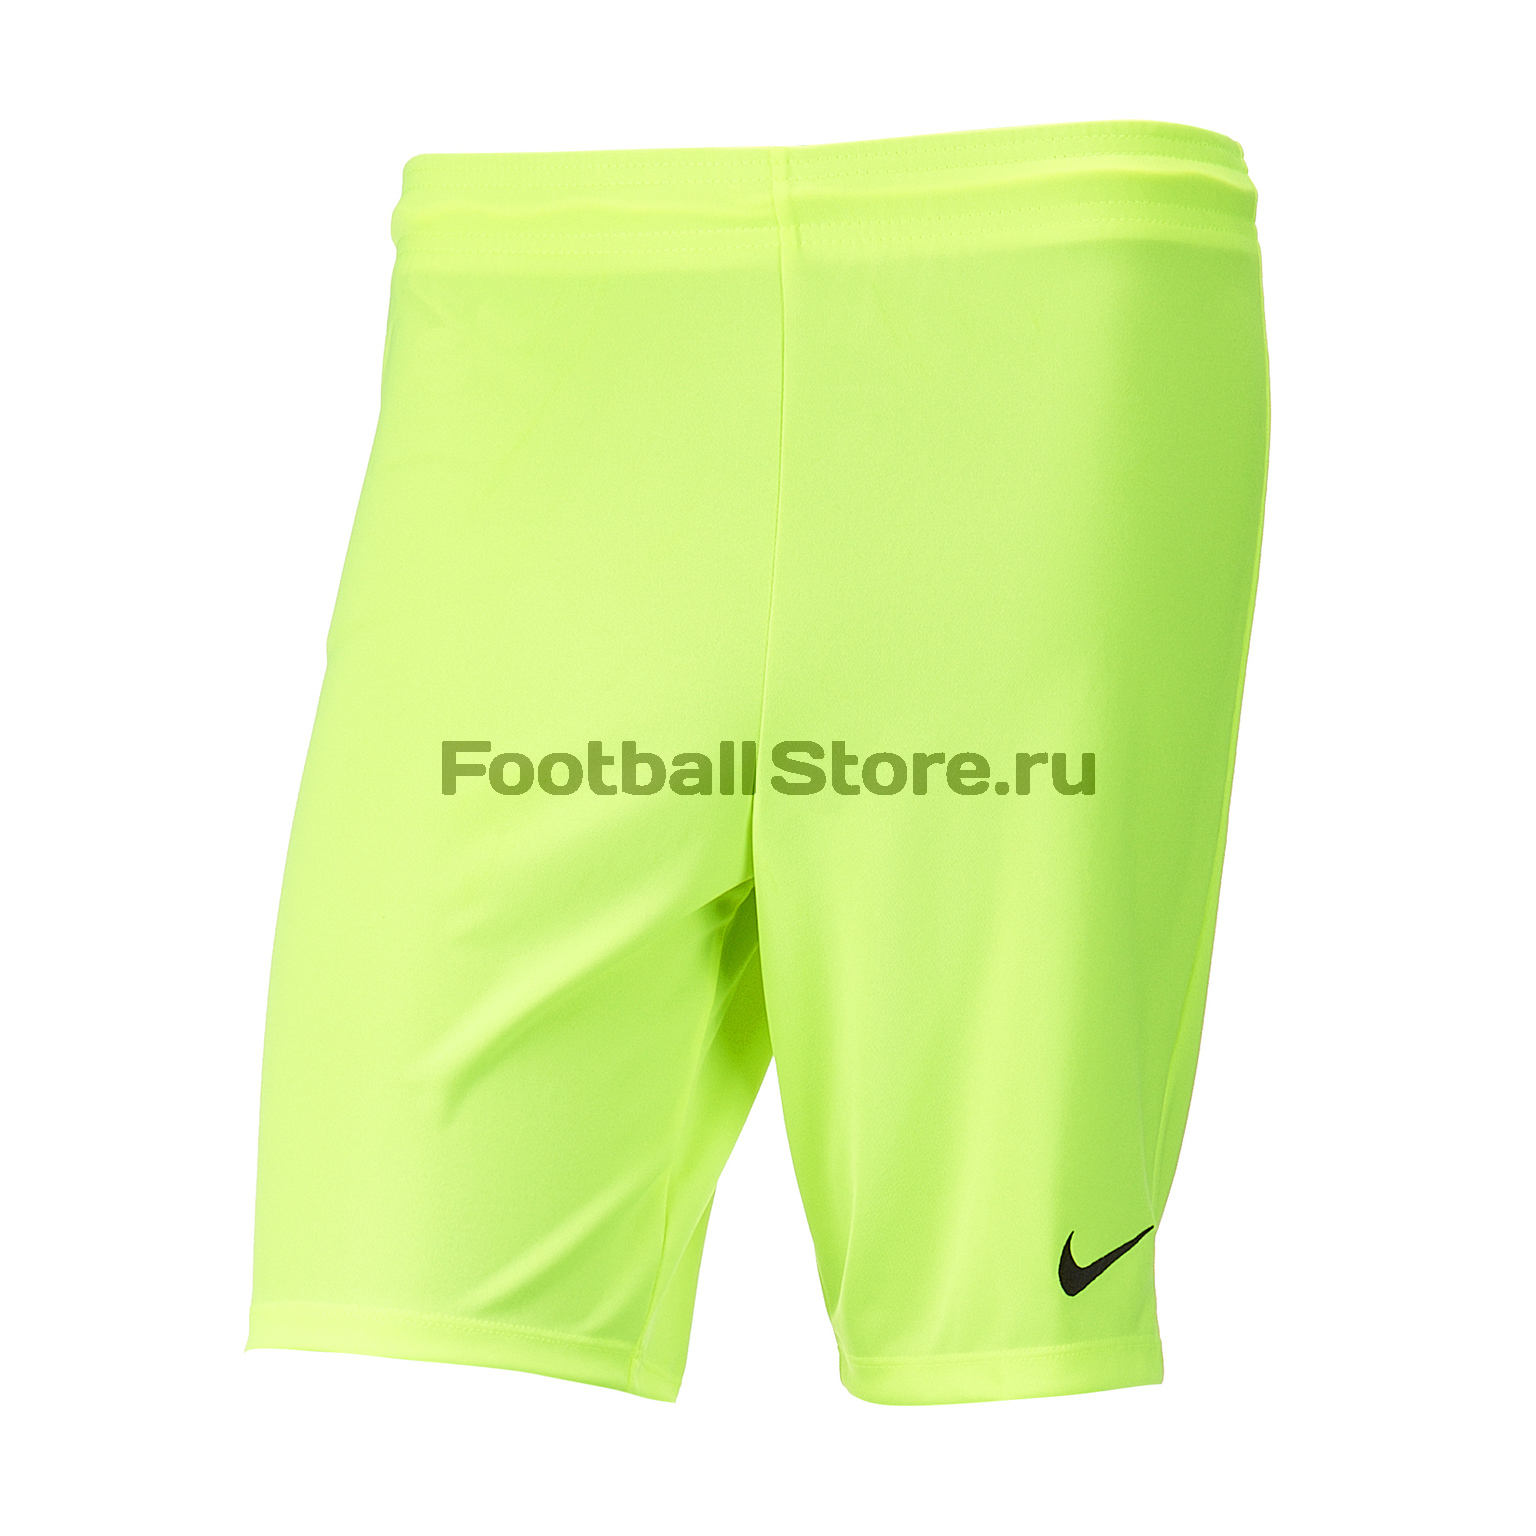 цена на Шорты Nike Park II KNIT Short NB 725887-702